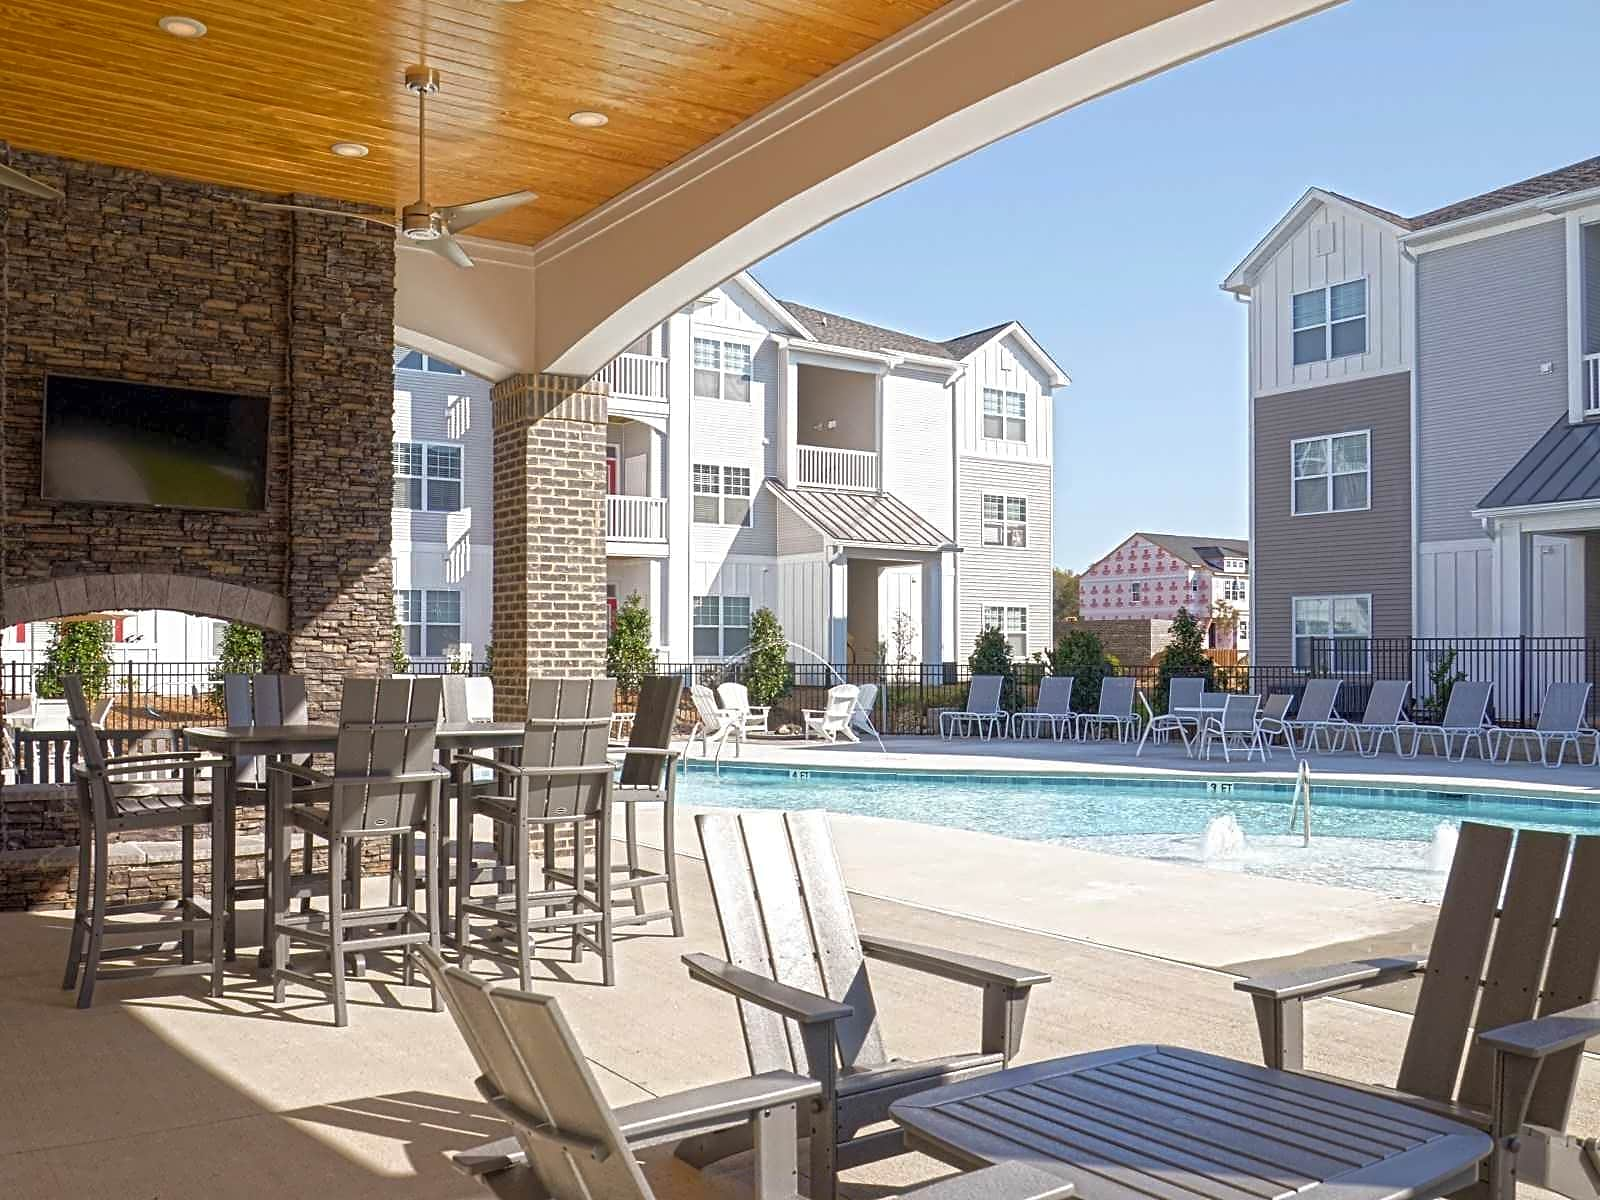 Our pool deck is open year round for you to lounge and soak in the sun.